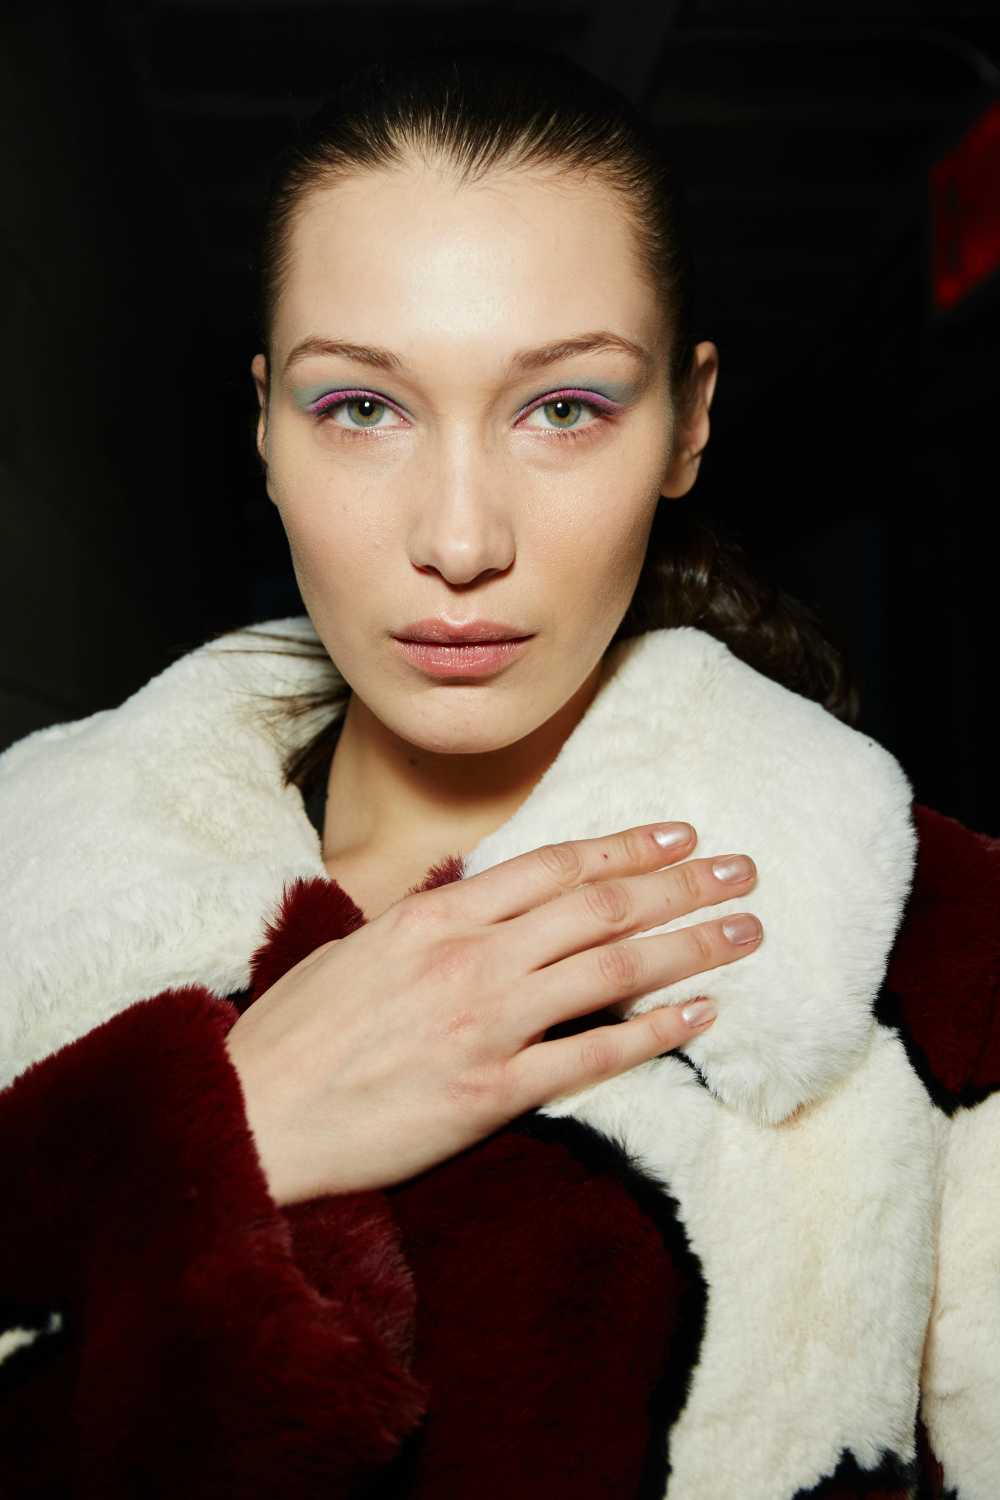 <p>Essie for Oscar de la Renta. <strong>PHOTO CREDIT: Sam Kim for essie</strong></p>